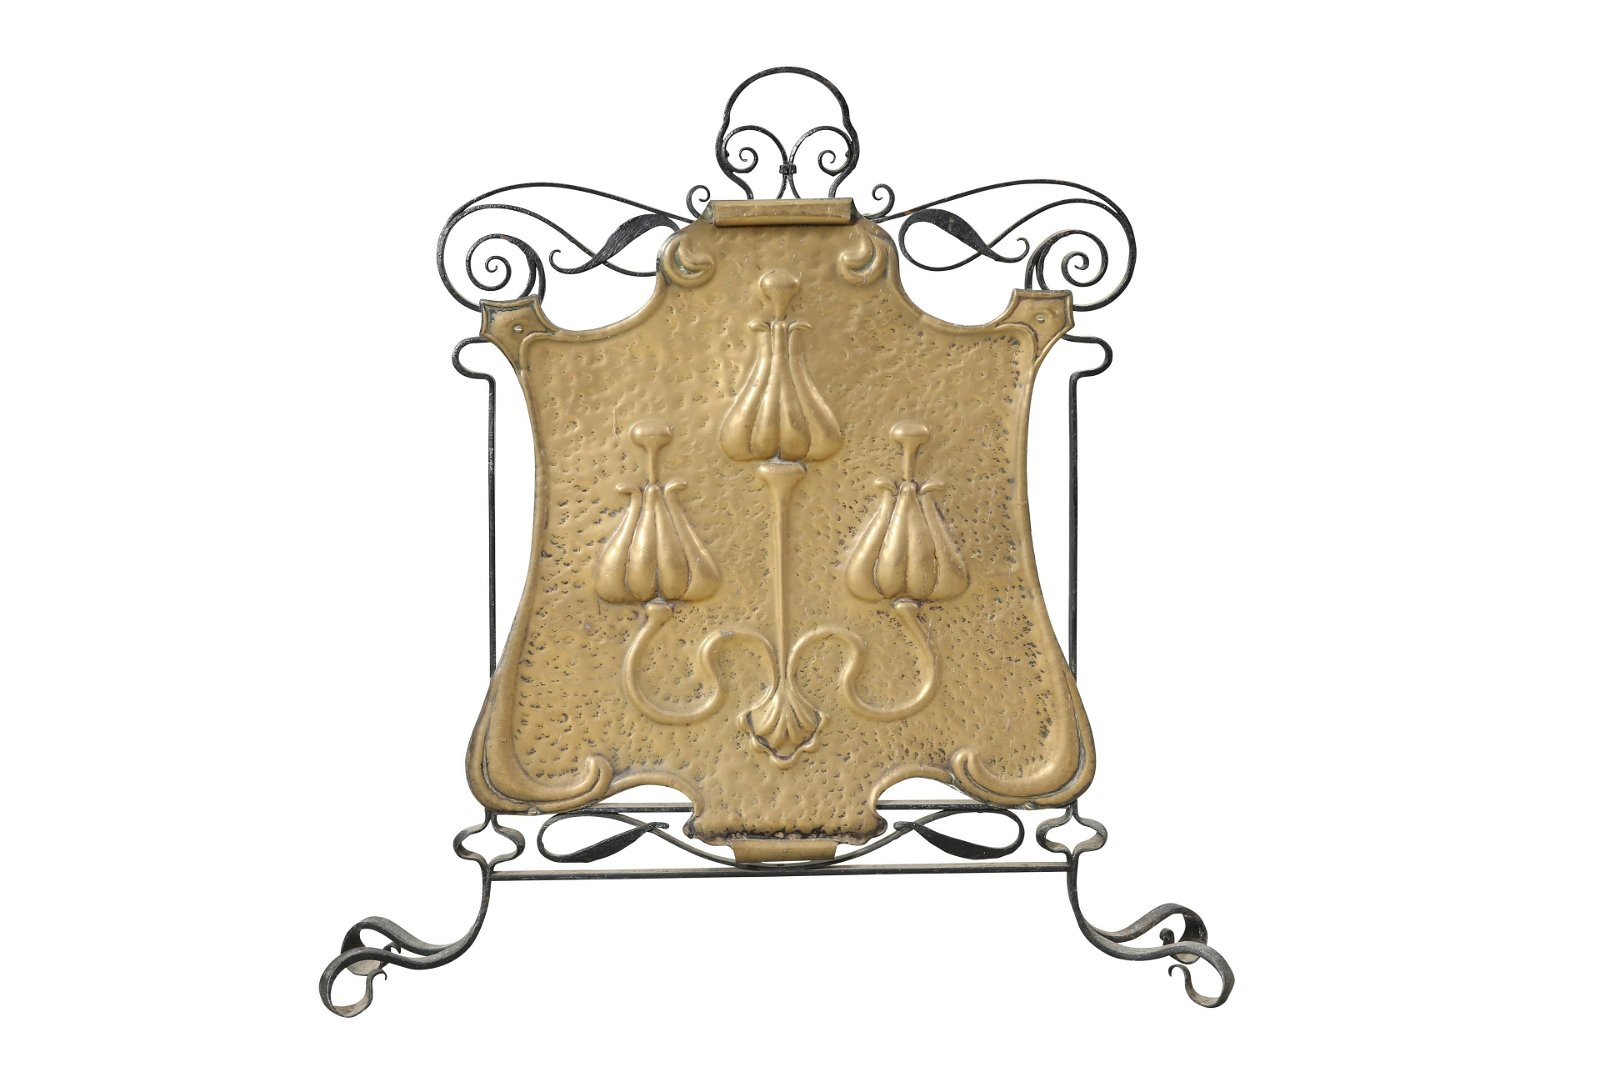 AN ARTS AND CRAFTS BRASS AND WROUGHT IRON FIRESCREEN,